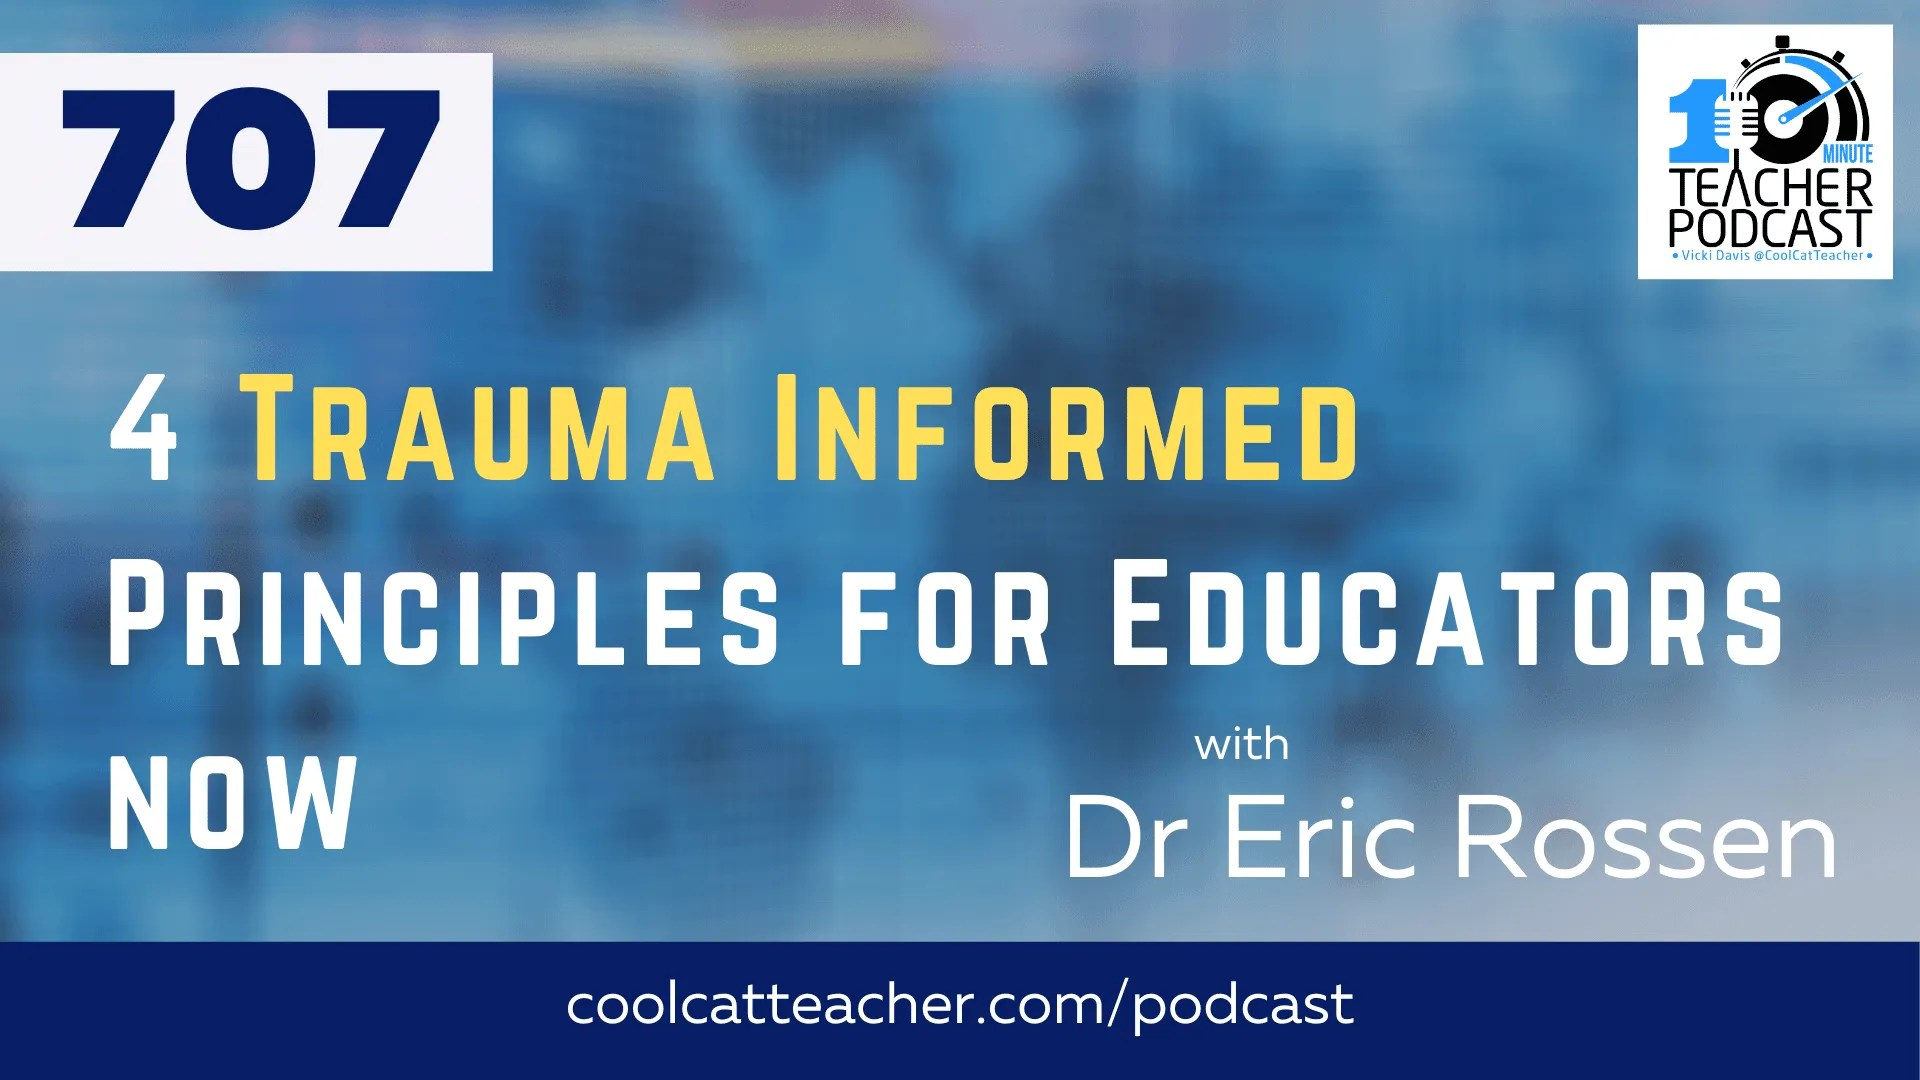 Current Research and 4 Trauma-Informed Principles to Help Students Now with Dr. Eric Rossen